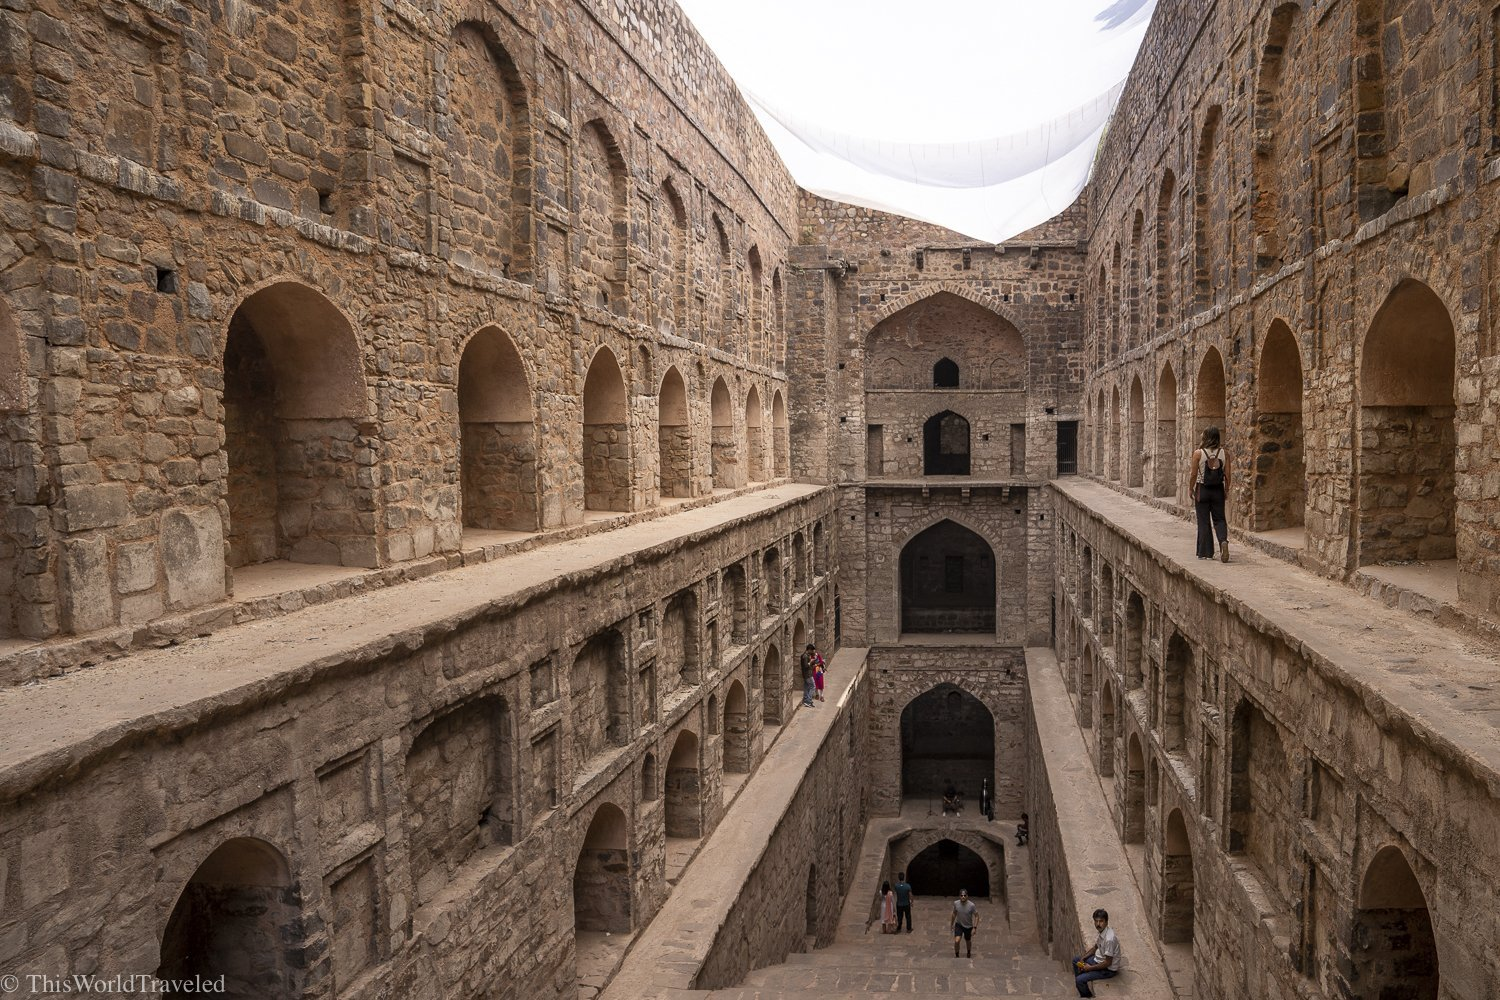 beige colored step well that is 3 stories deep. there are many archways and stairs leading down to the bottom. This is located in Delhi, India